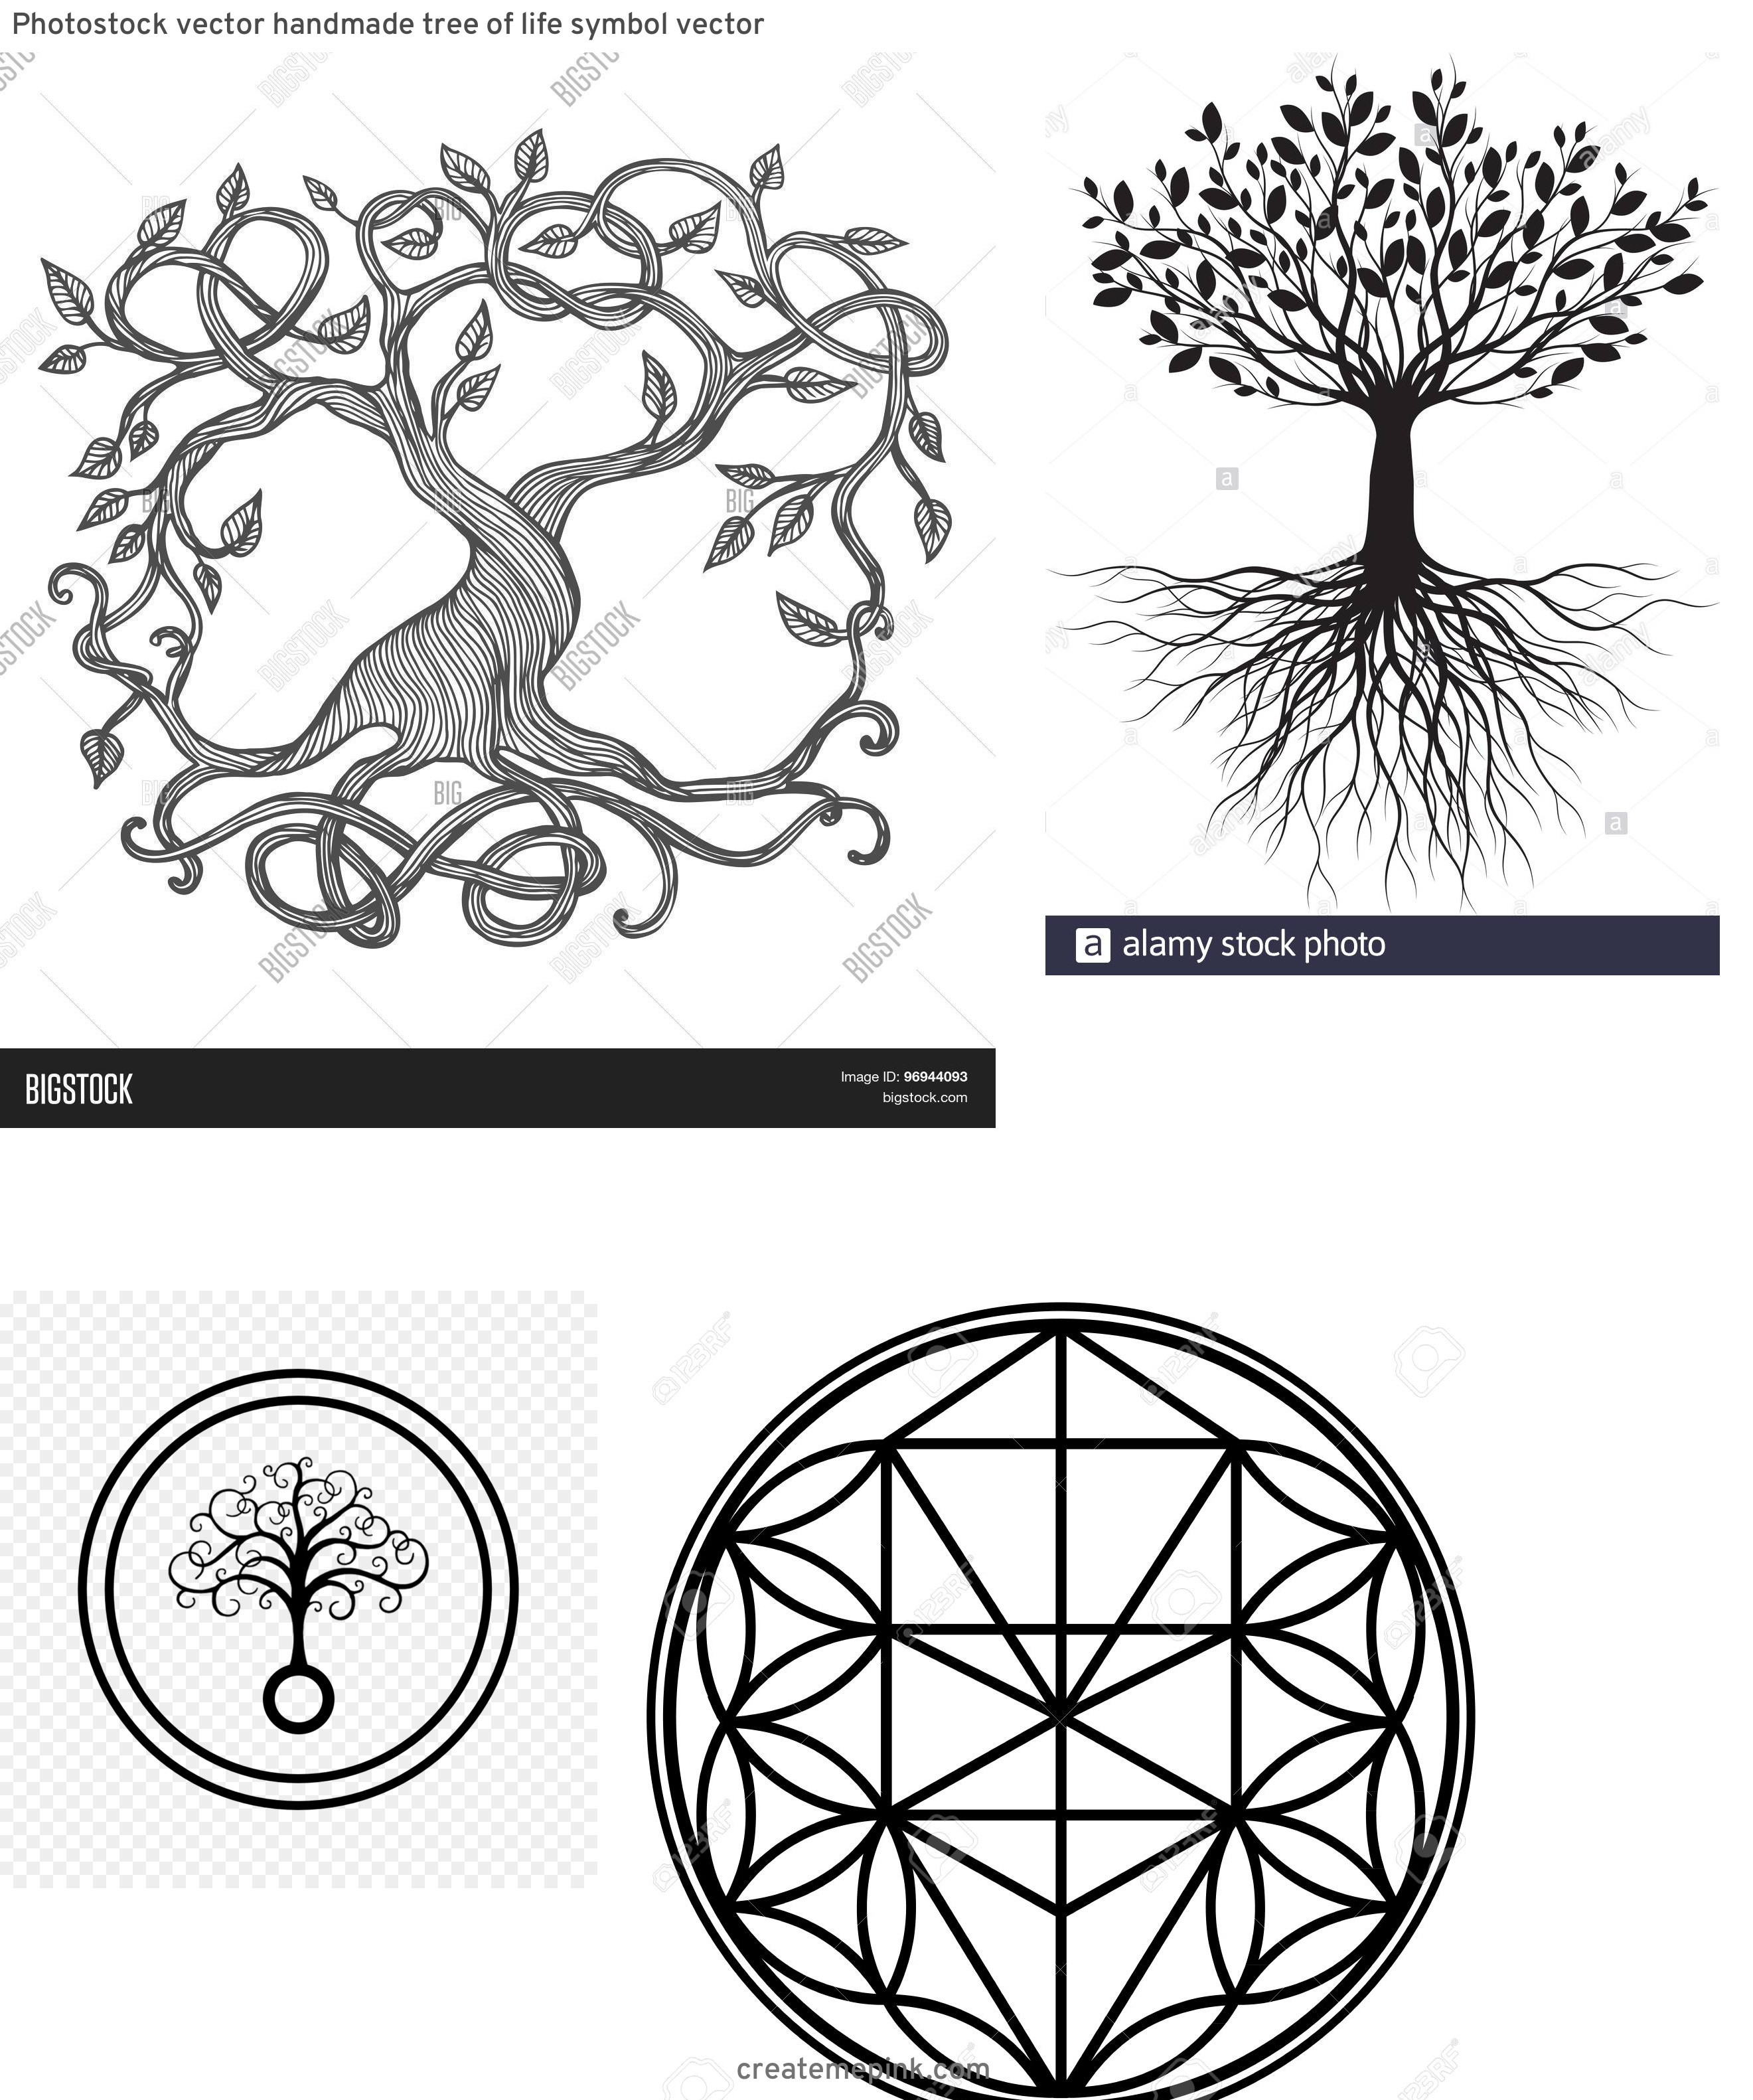 Vector Images Black Tree Of Life: Photostock Vector Handmade Tree Of Life Symbol Vector